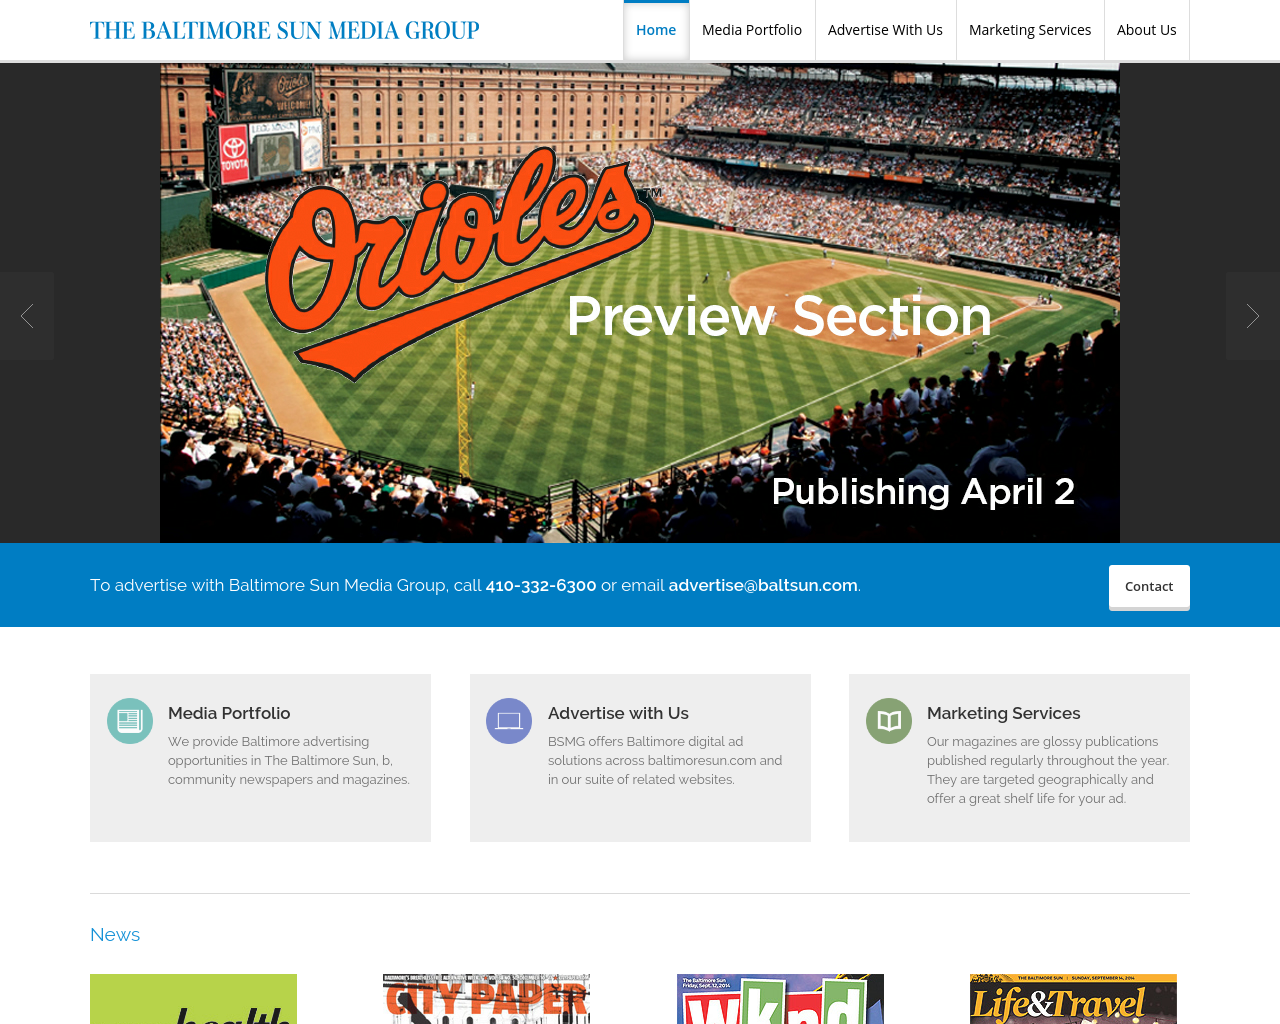 The-Baltimore-Sun-Media-Group-Advertising-Reviews-Pricing